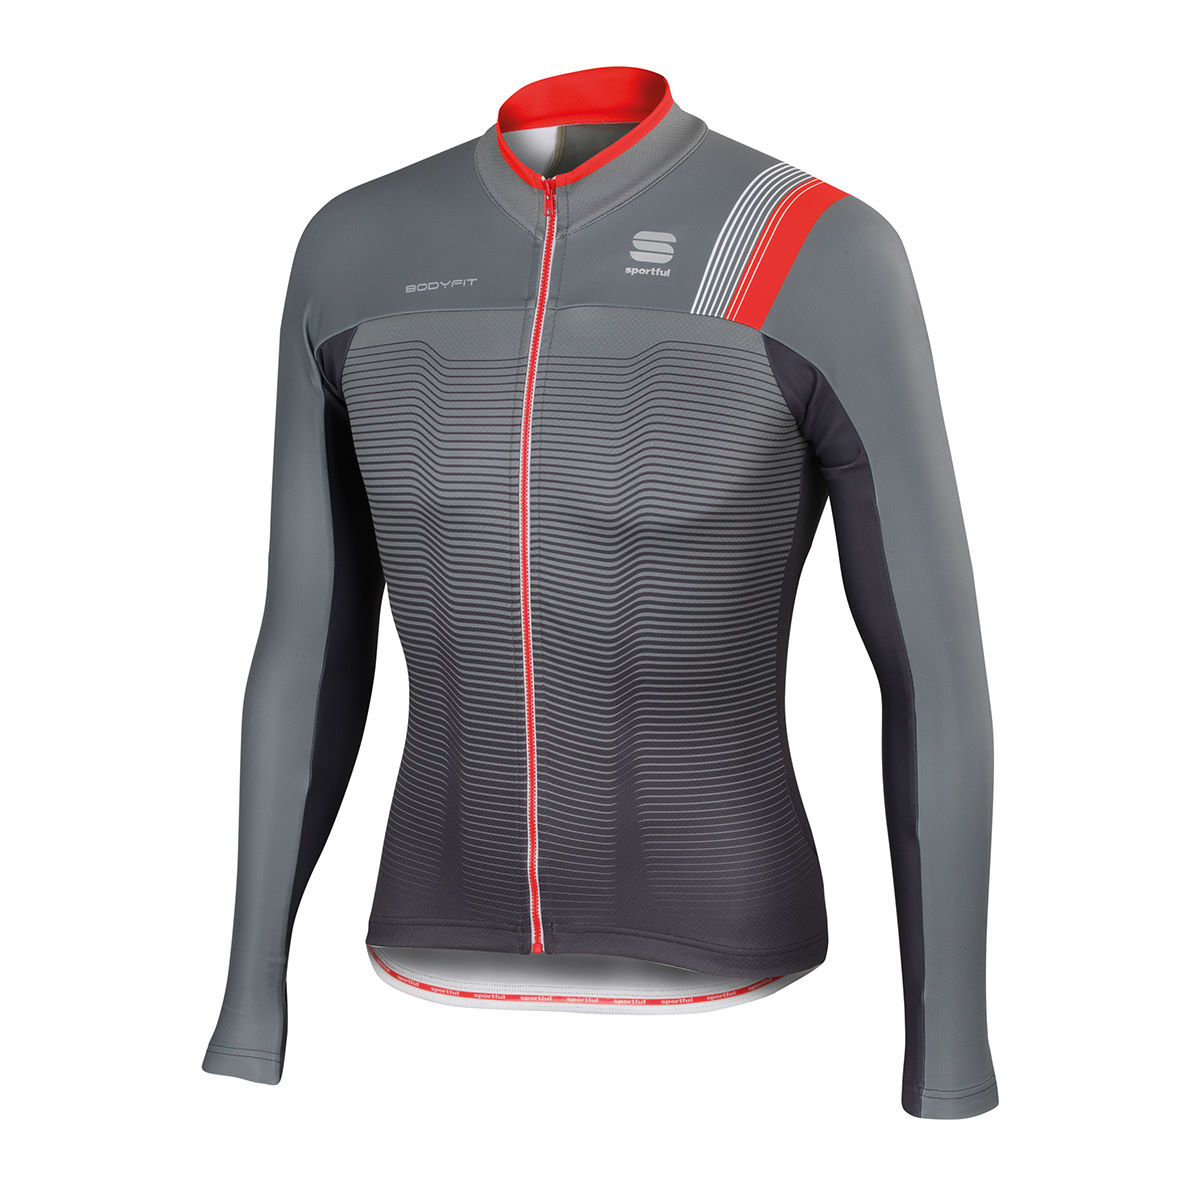 Maillot Sportful BodyFit Pro (thermique, AH16) - XXL Olive/Anthracite/Red Maillots vélo à manches longues